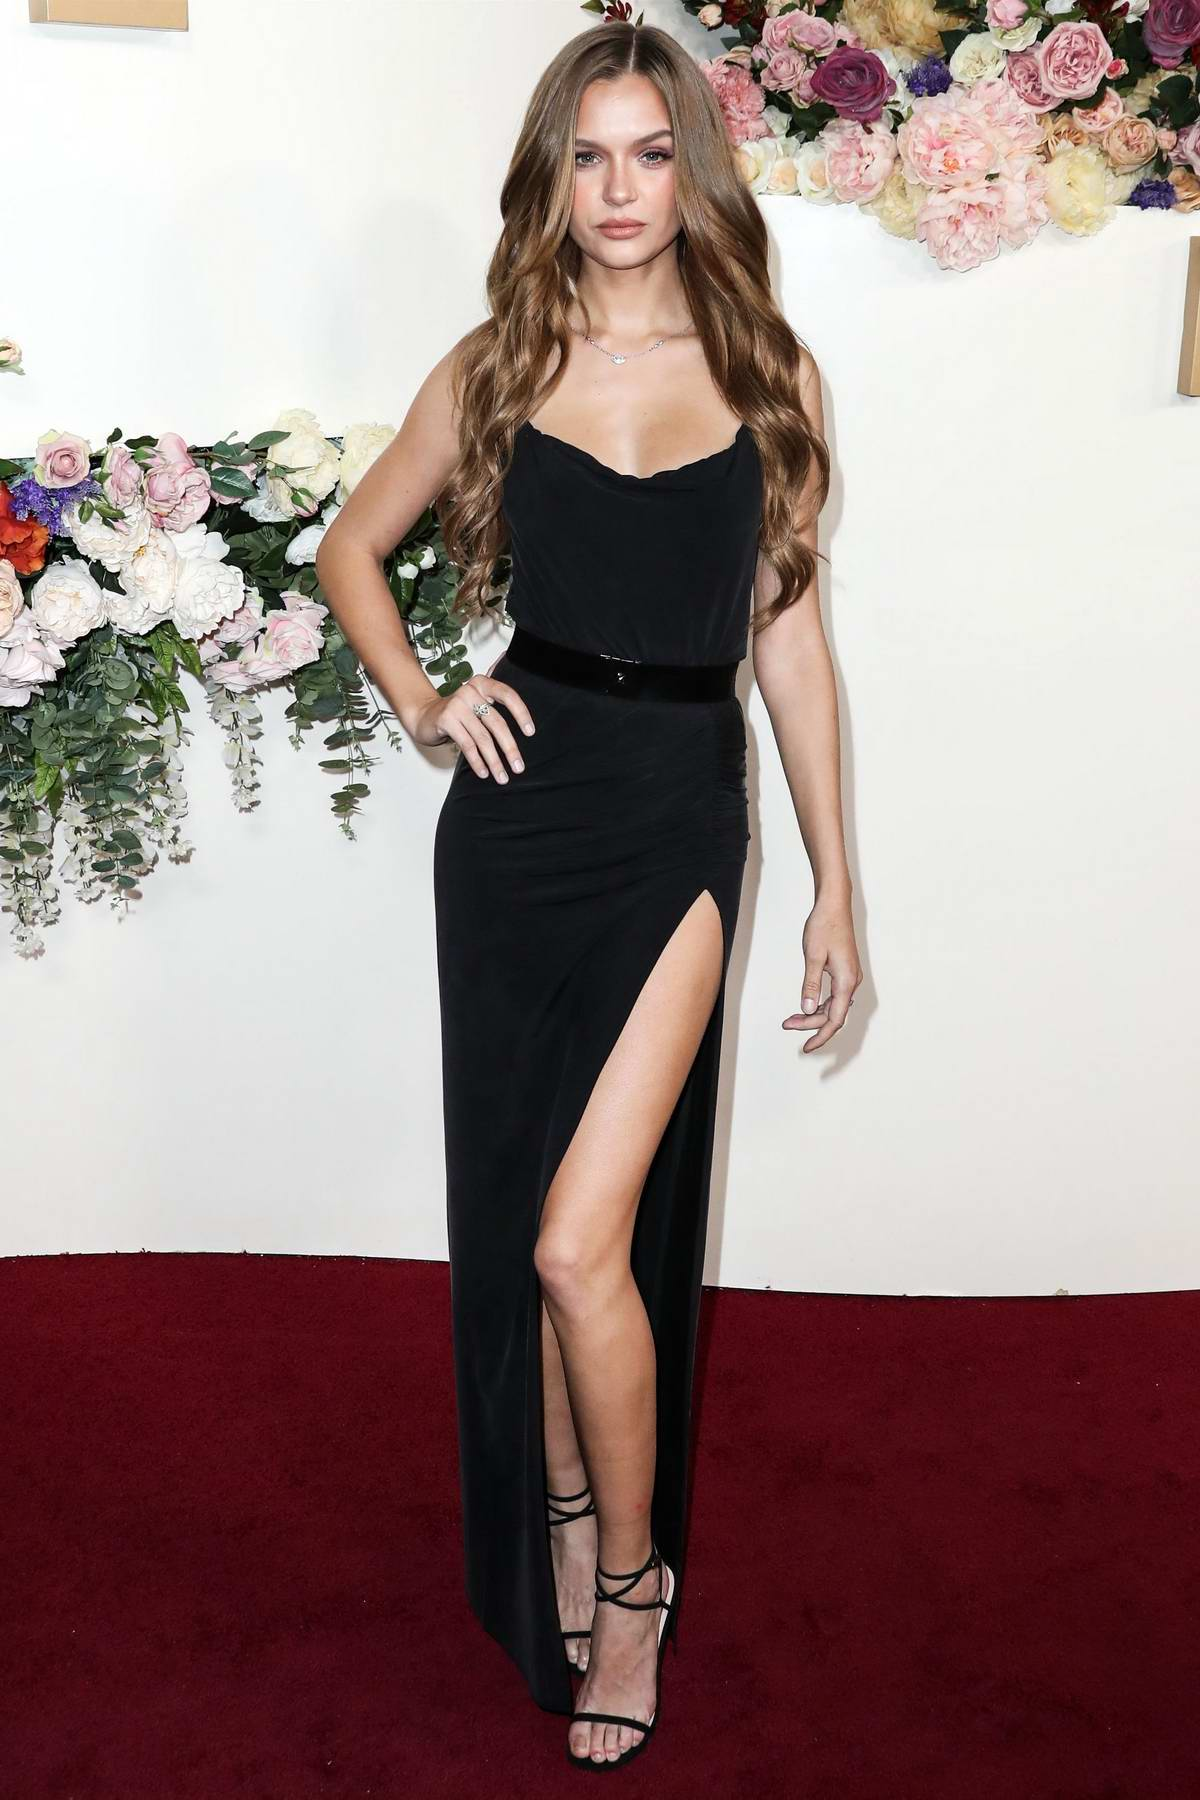 Josephine Skriver attends the 3rd Annual REVOLVE Awards at Goya Studios in Hollywood, California